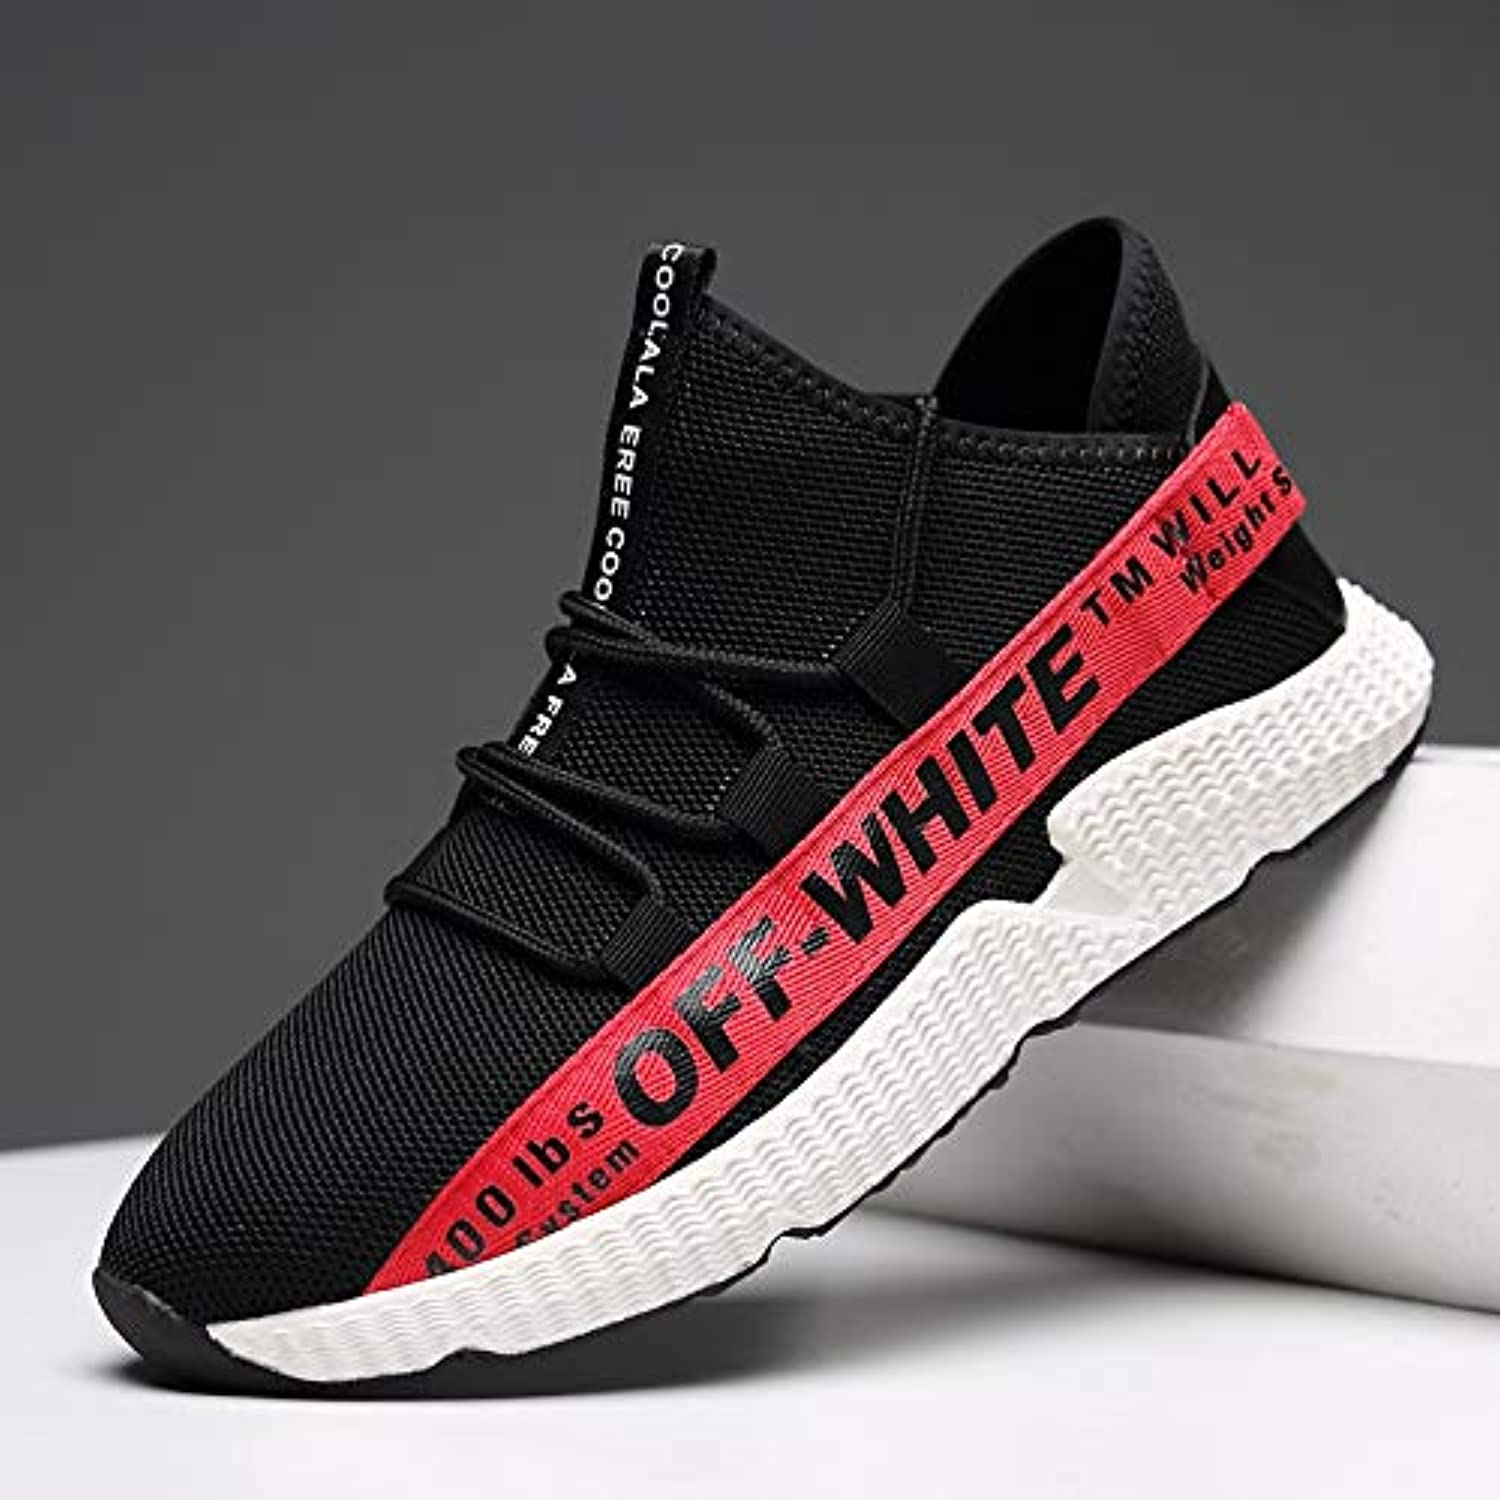 KMJBS Men's shoes Leisure Sports shoes Summer Street Fashion Fashion Flying Weaving Set Foot.